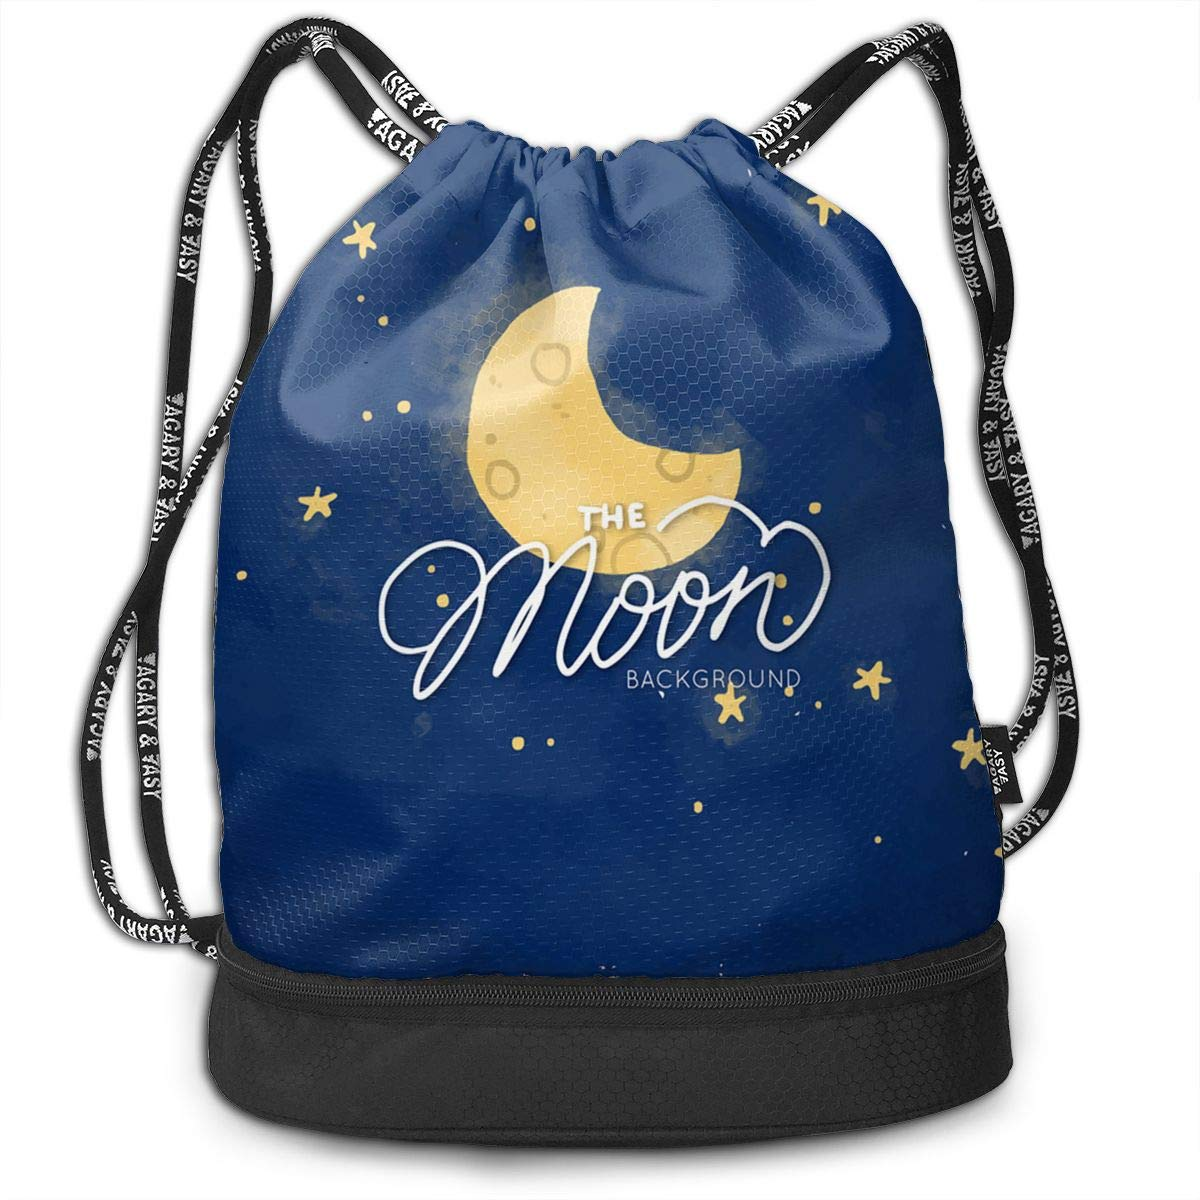 Cinch Backpack Sackpack Tote Sack with Wet /& Dry Compartments for Travel Hiking Gym Zol1Q Colorful Galaxy Space Moon Star Drawstring Bag for Men /& Women